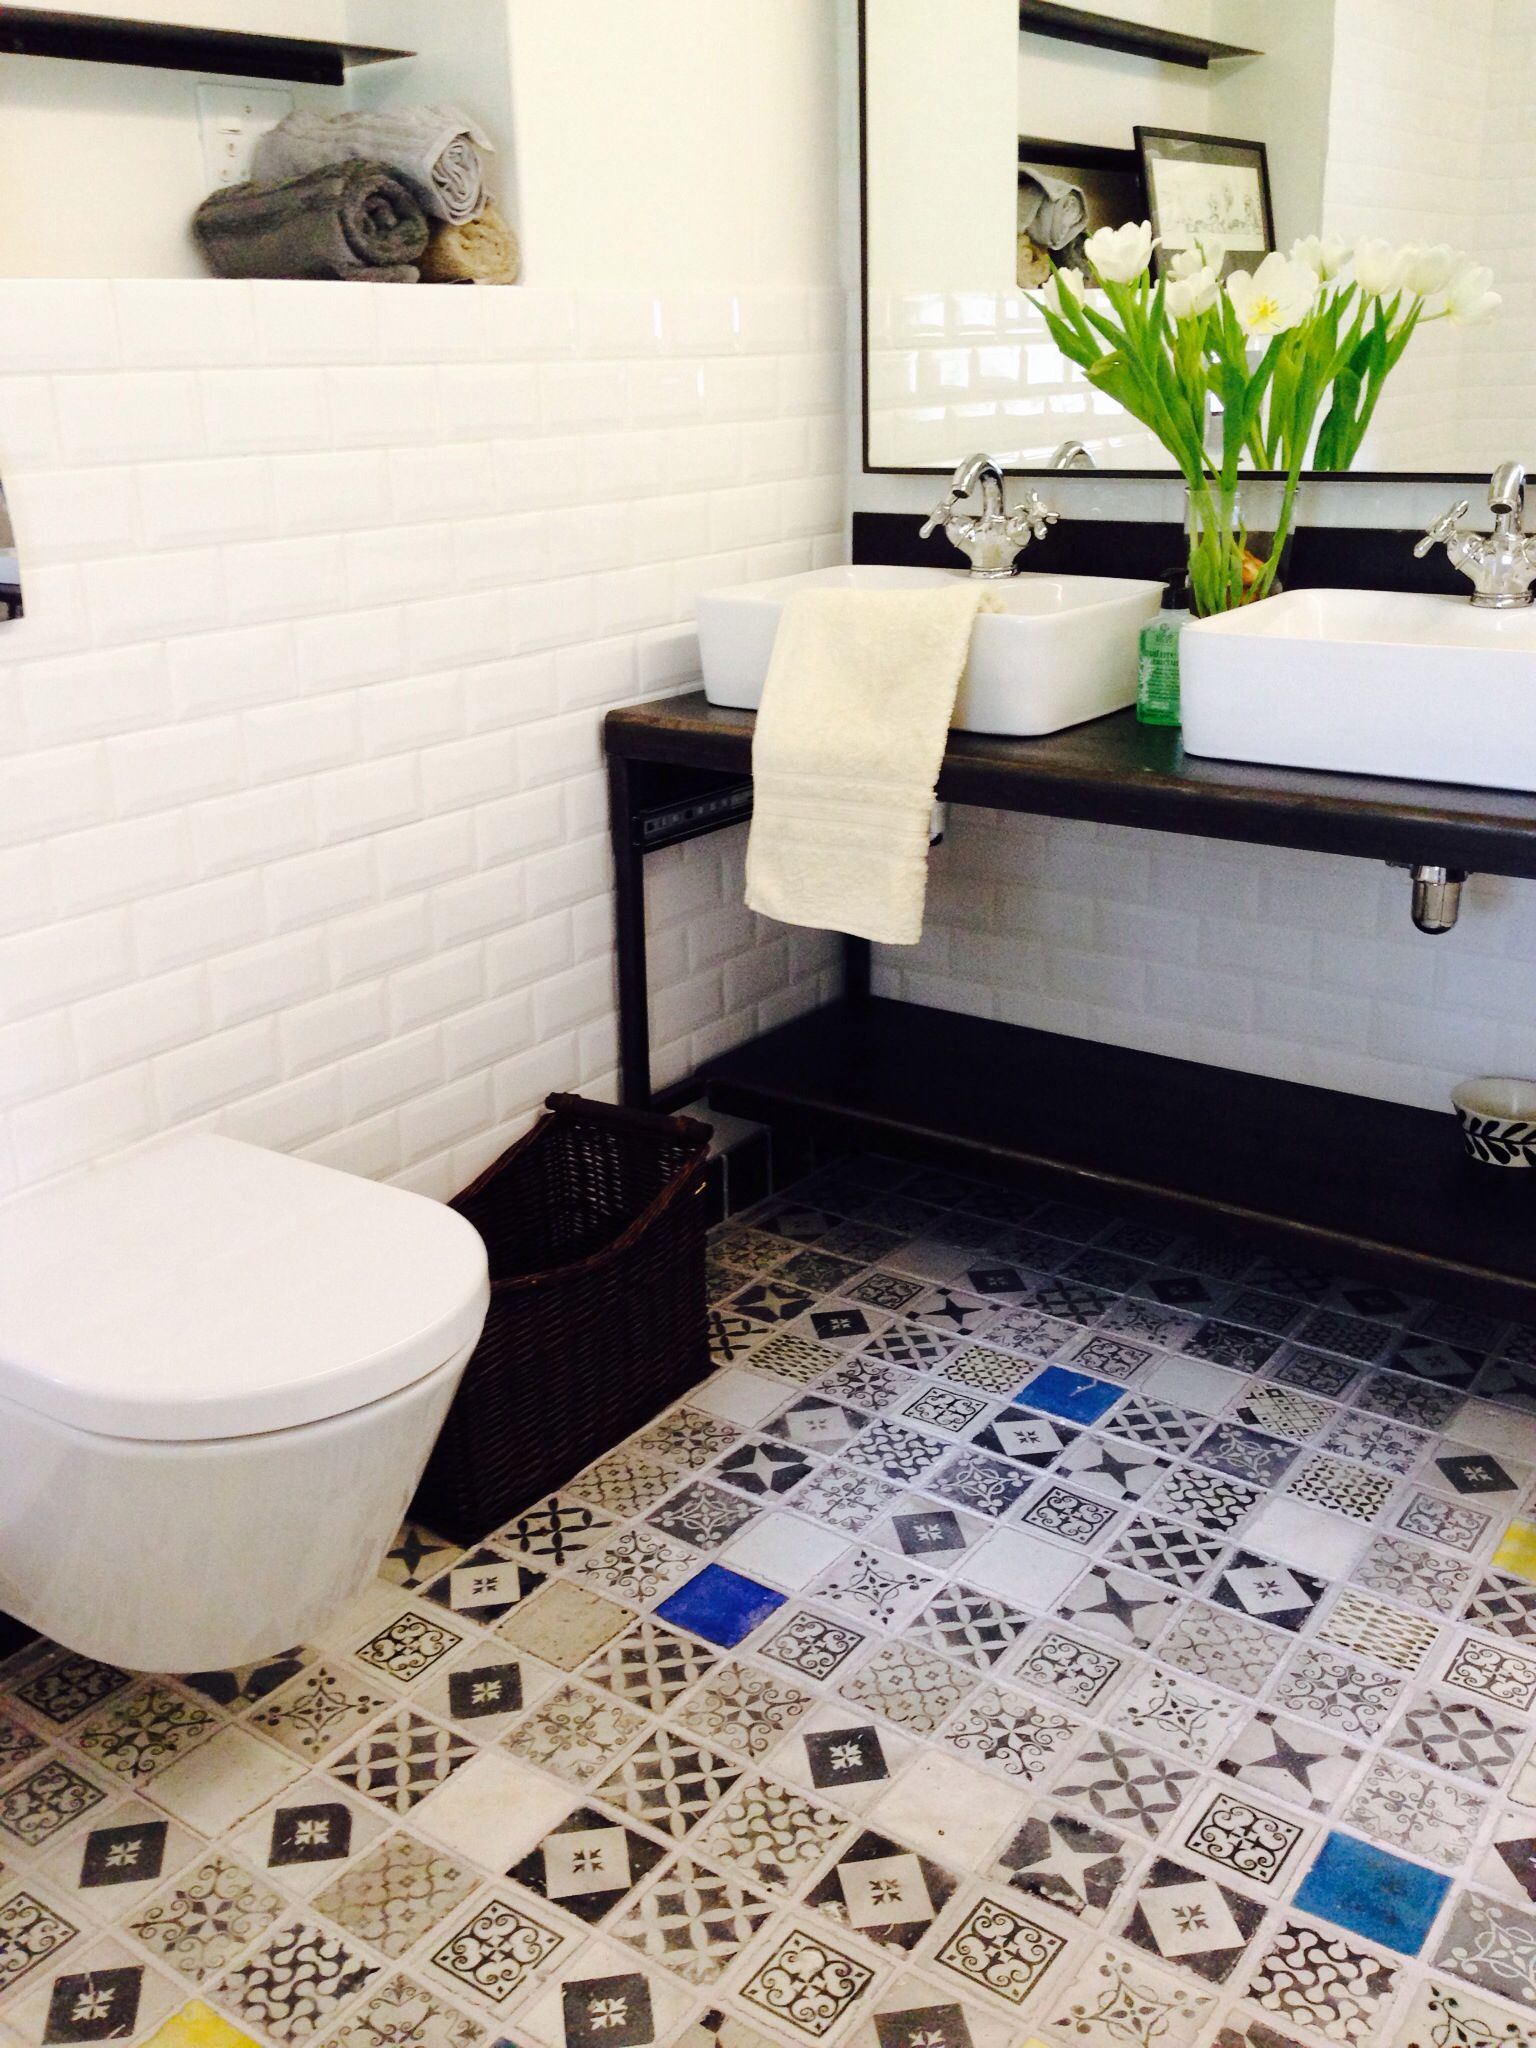 Patterned And Hand Printed Black White Geometric Designs On Handmade Floor Tiles In A Bathroom And Shower Tile Bathroom Bathroom Floor Tiles Bathroom Design